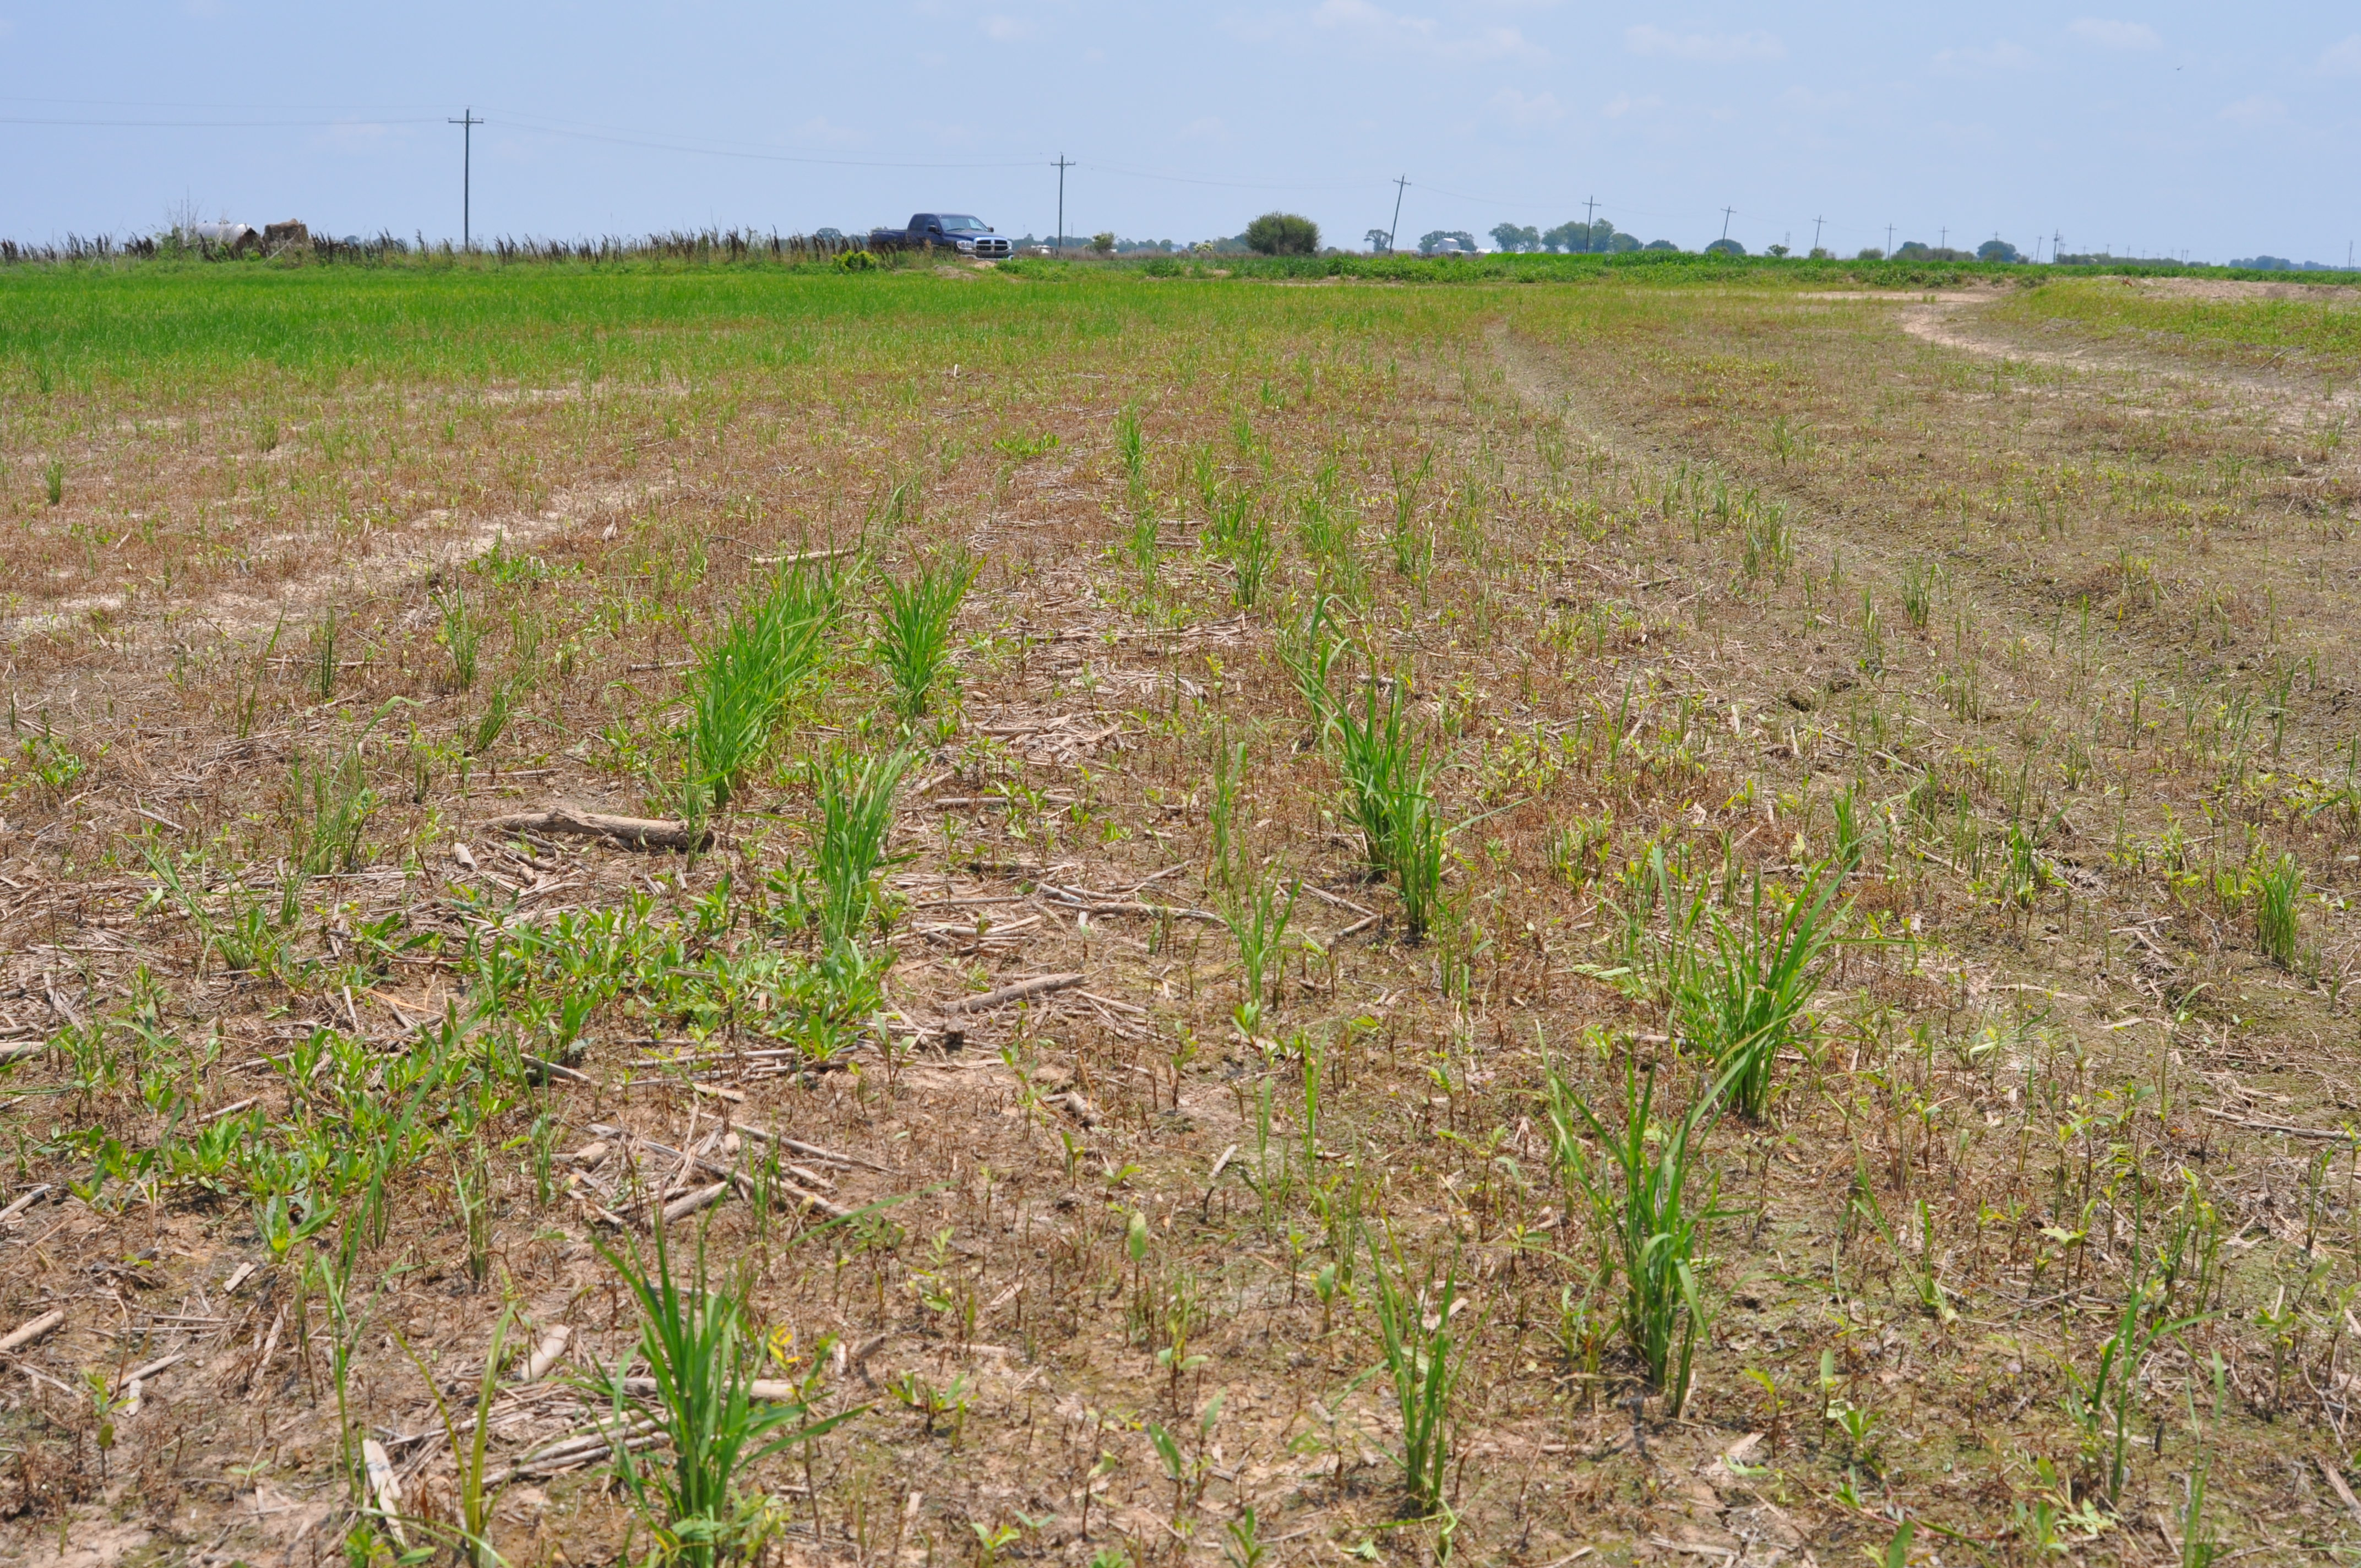 Fall Armyworm Infested Field